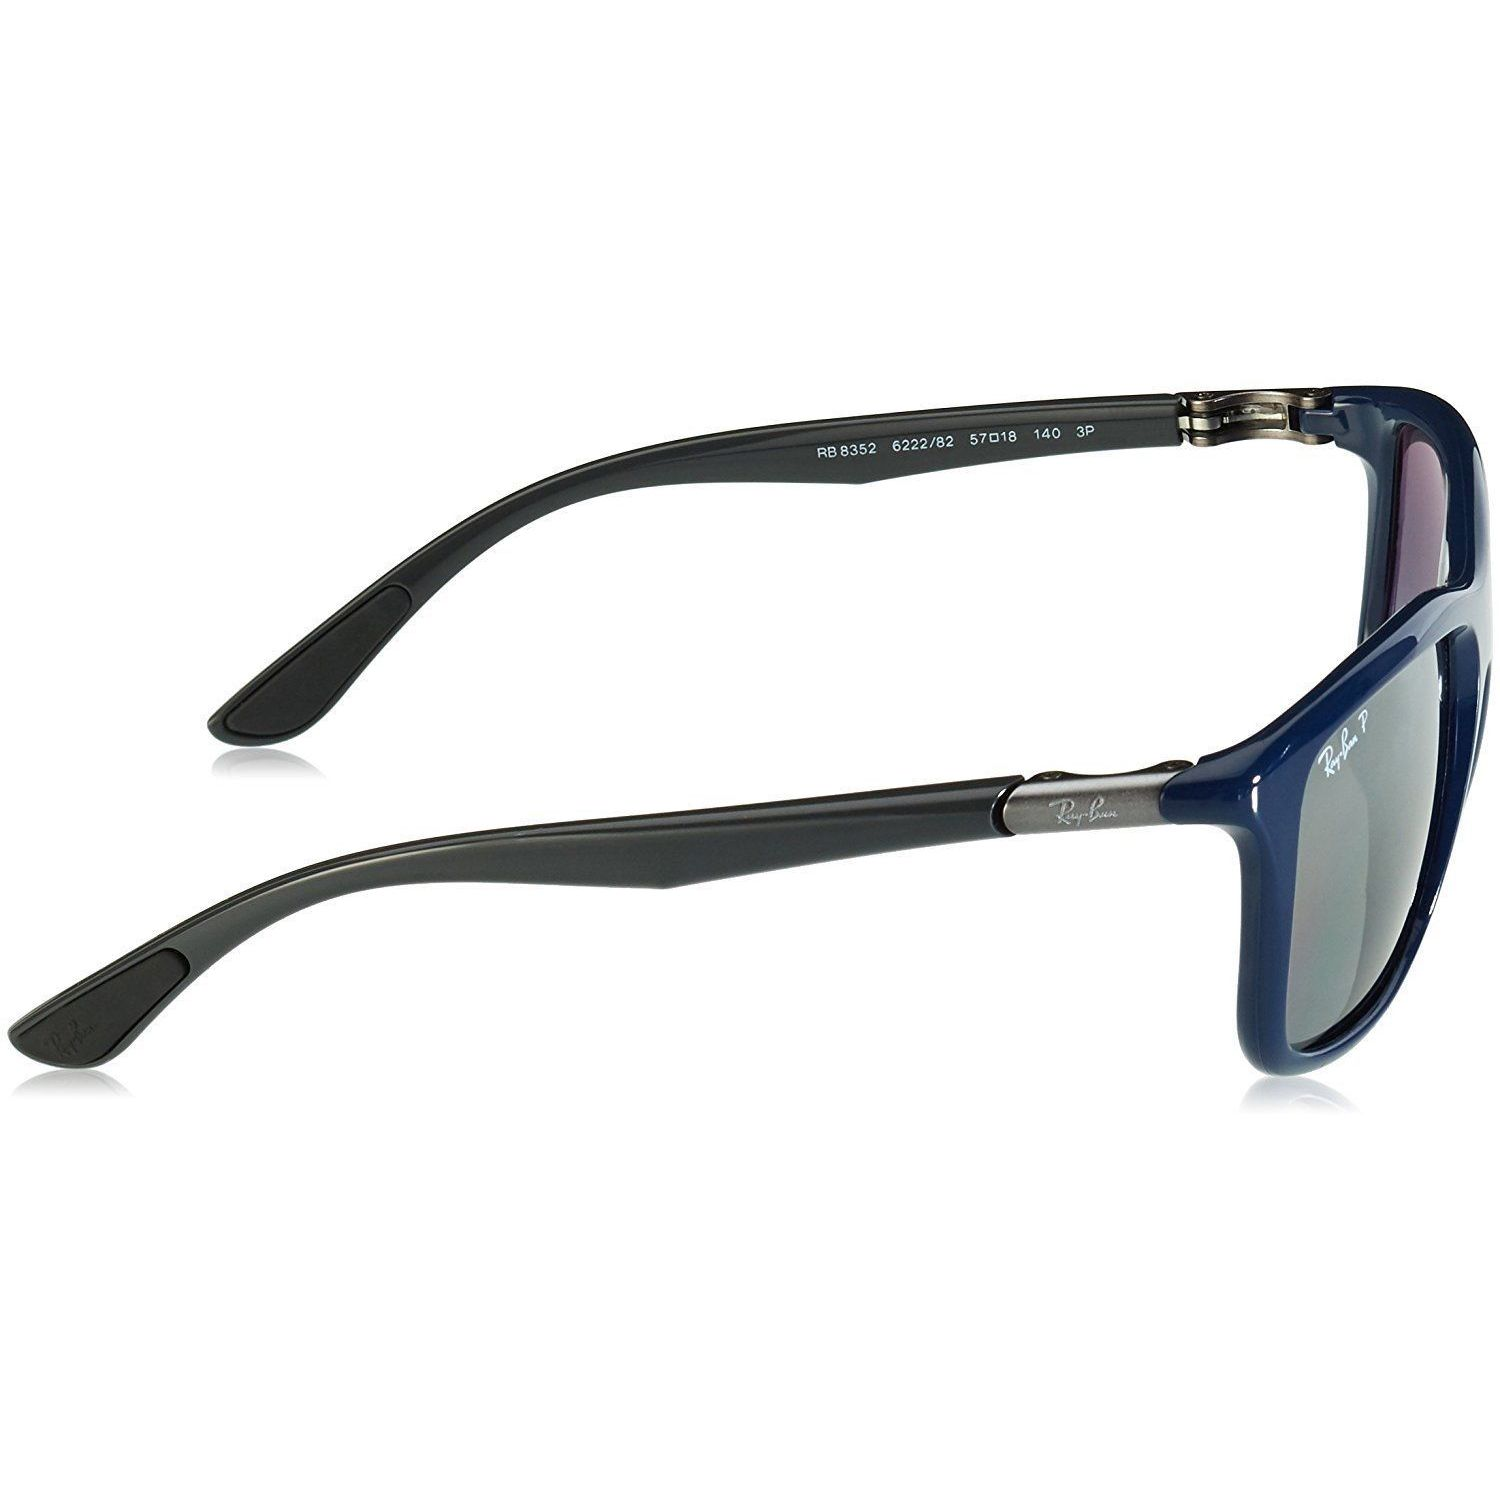 4cde621c72 Shop Ray-Ban RB8352 622282 Men s Blue Grey Frame Polarized Silver Mirror Lens  Sunglasses - Free Shipping Today - Overstock - 15287082